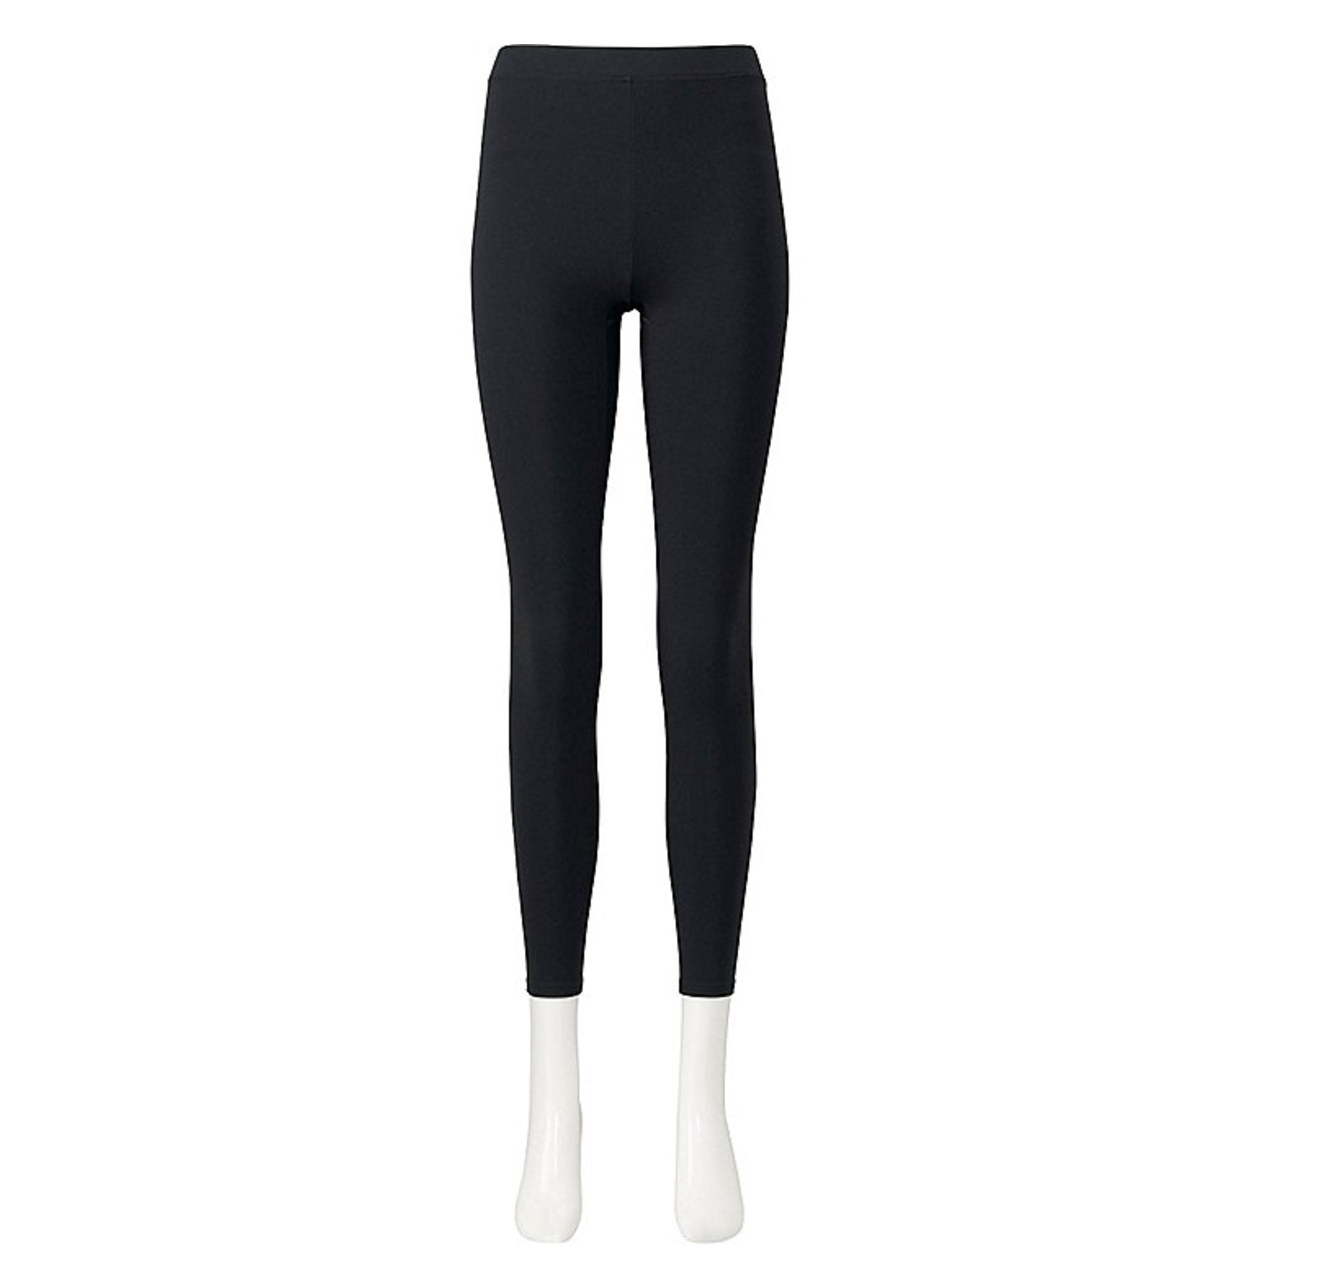 Heattech Leggings